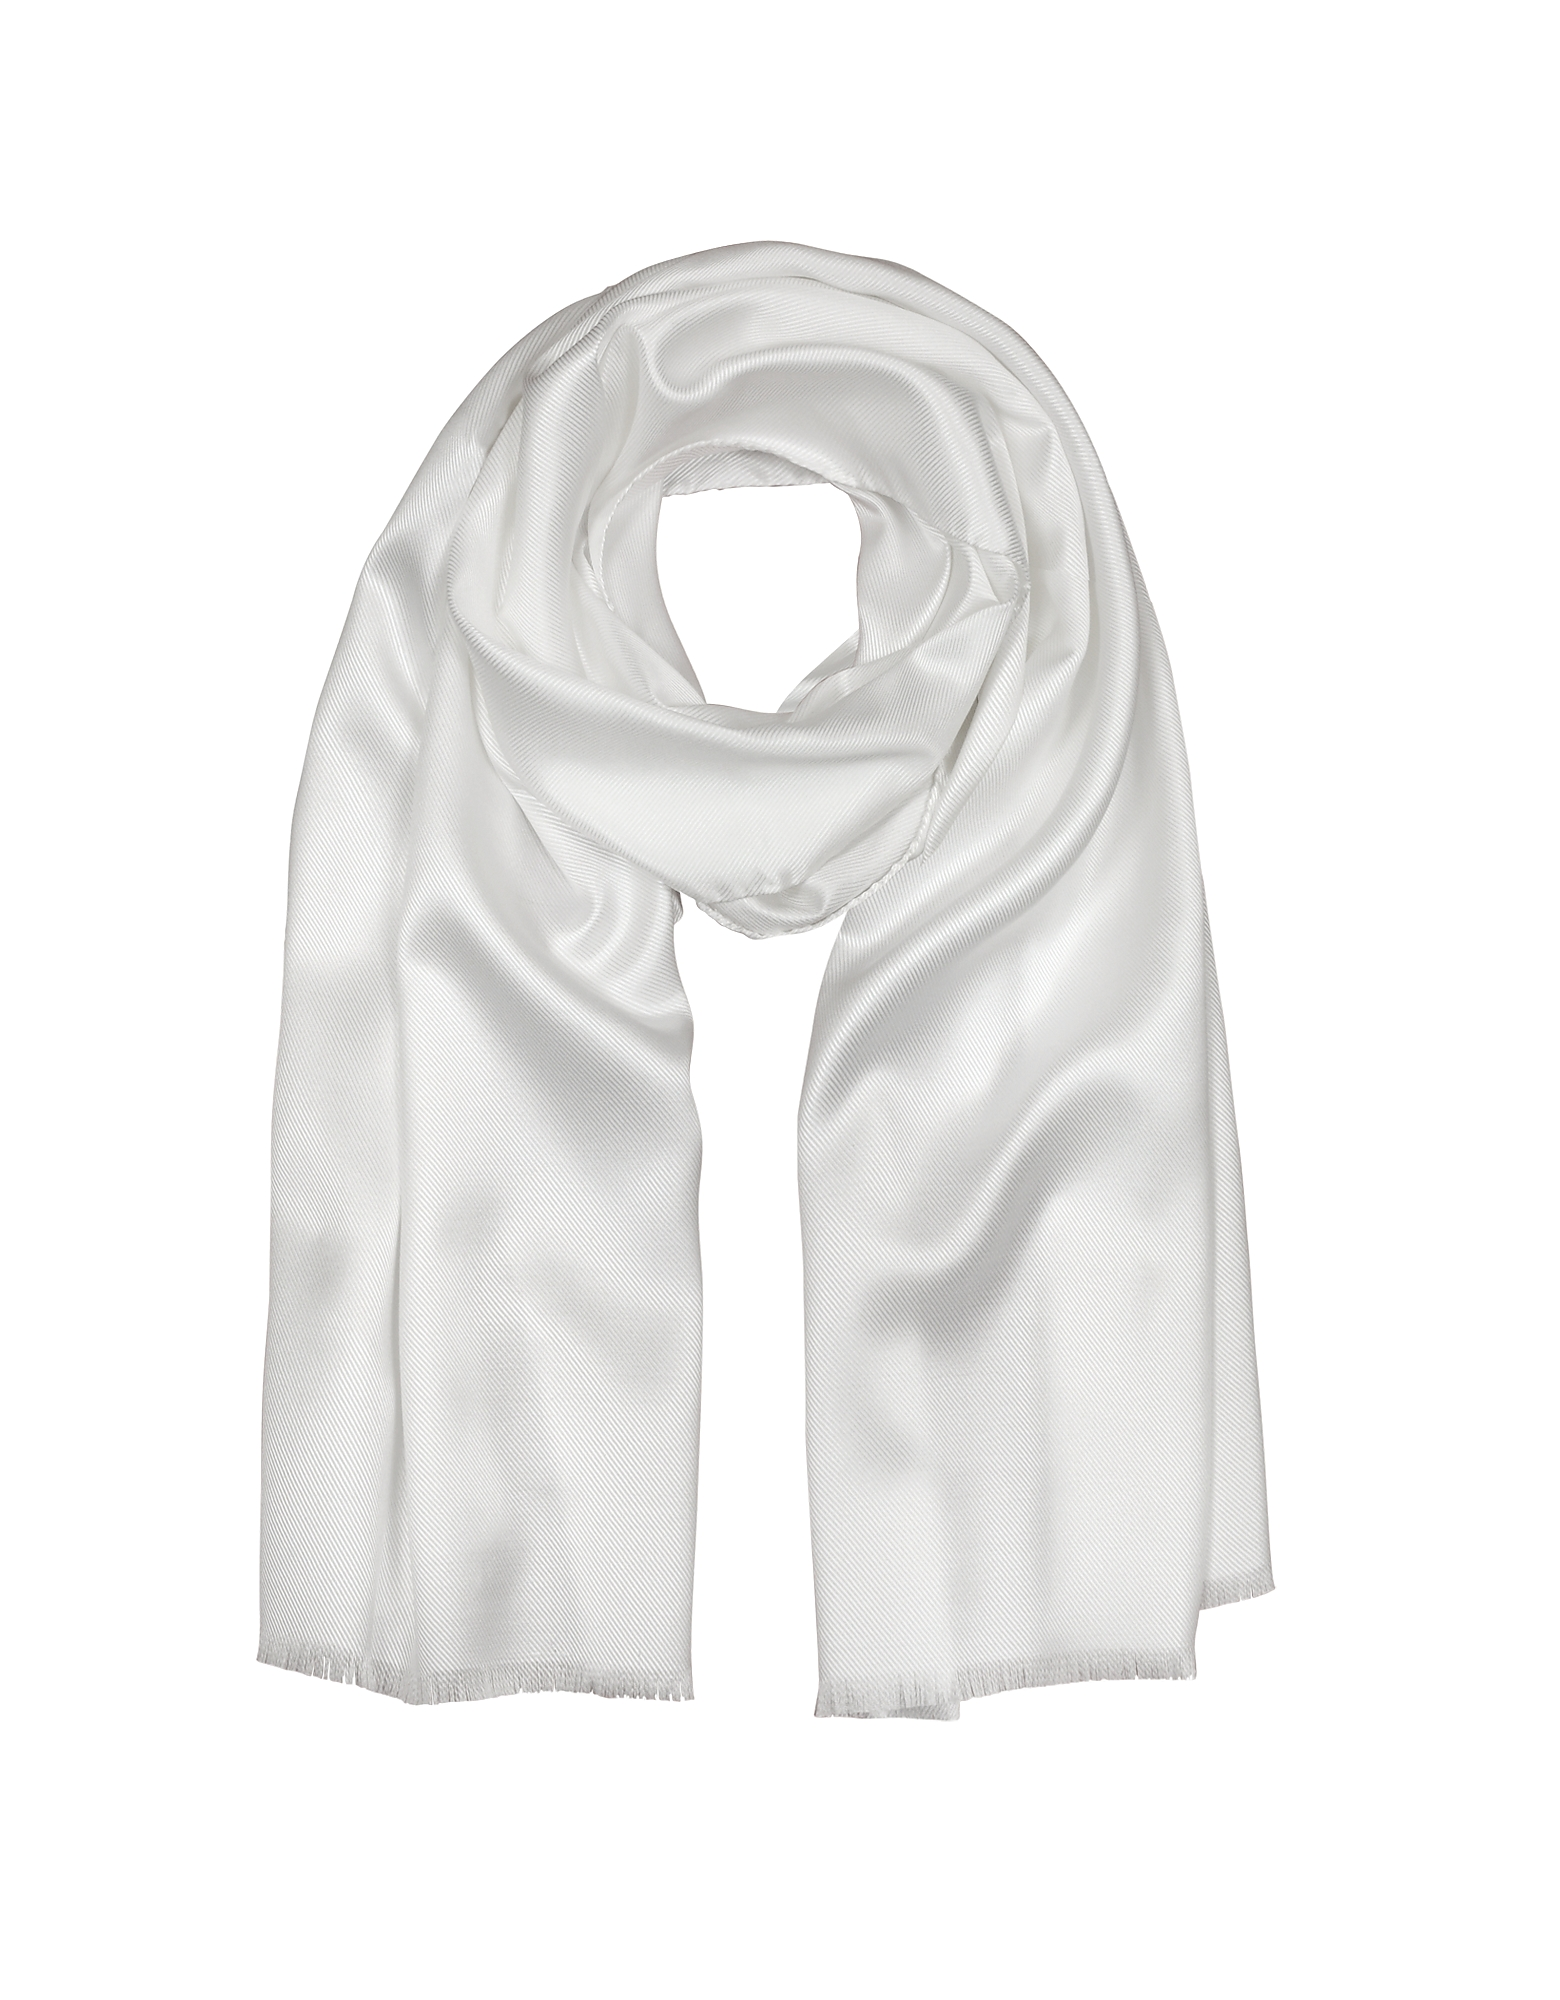 Forzieri Men's Scarves, Pure White Silk Men's Long Scarf